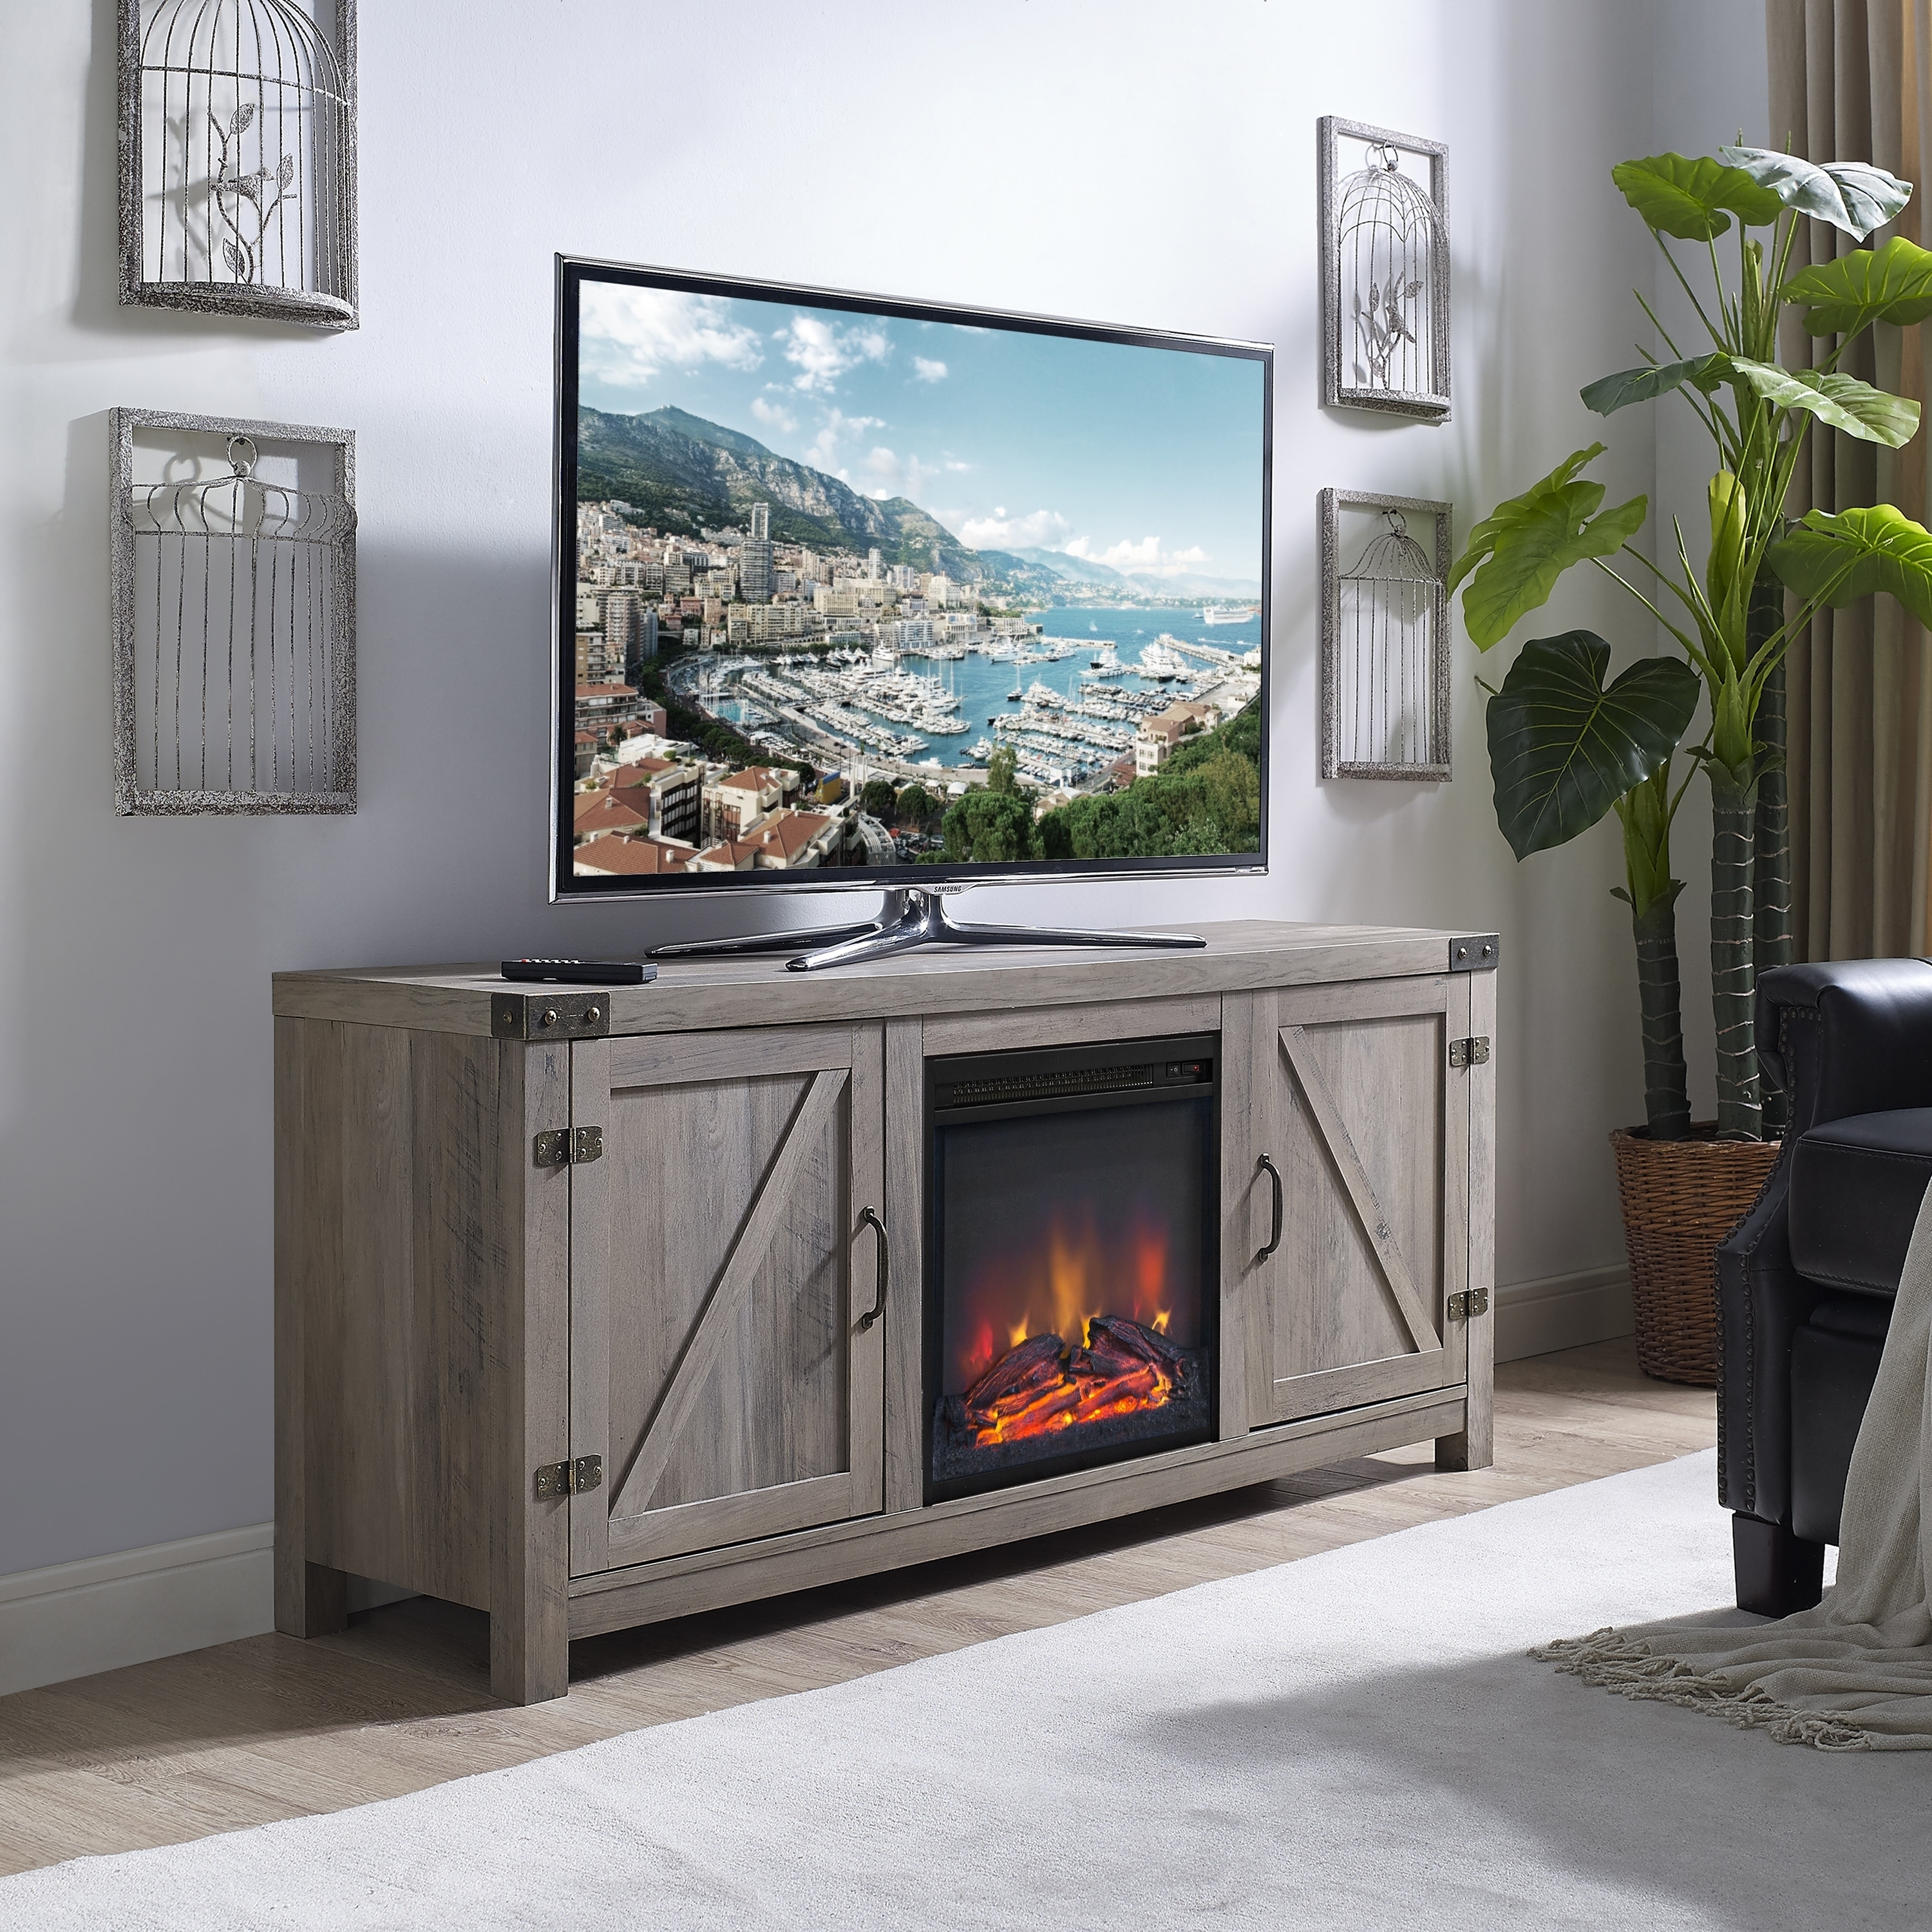 Grey Wash 58-inch Barn Door TV Stand with Fireplace - Free Shipping Today -  Overstock.com - 24209527